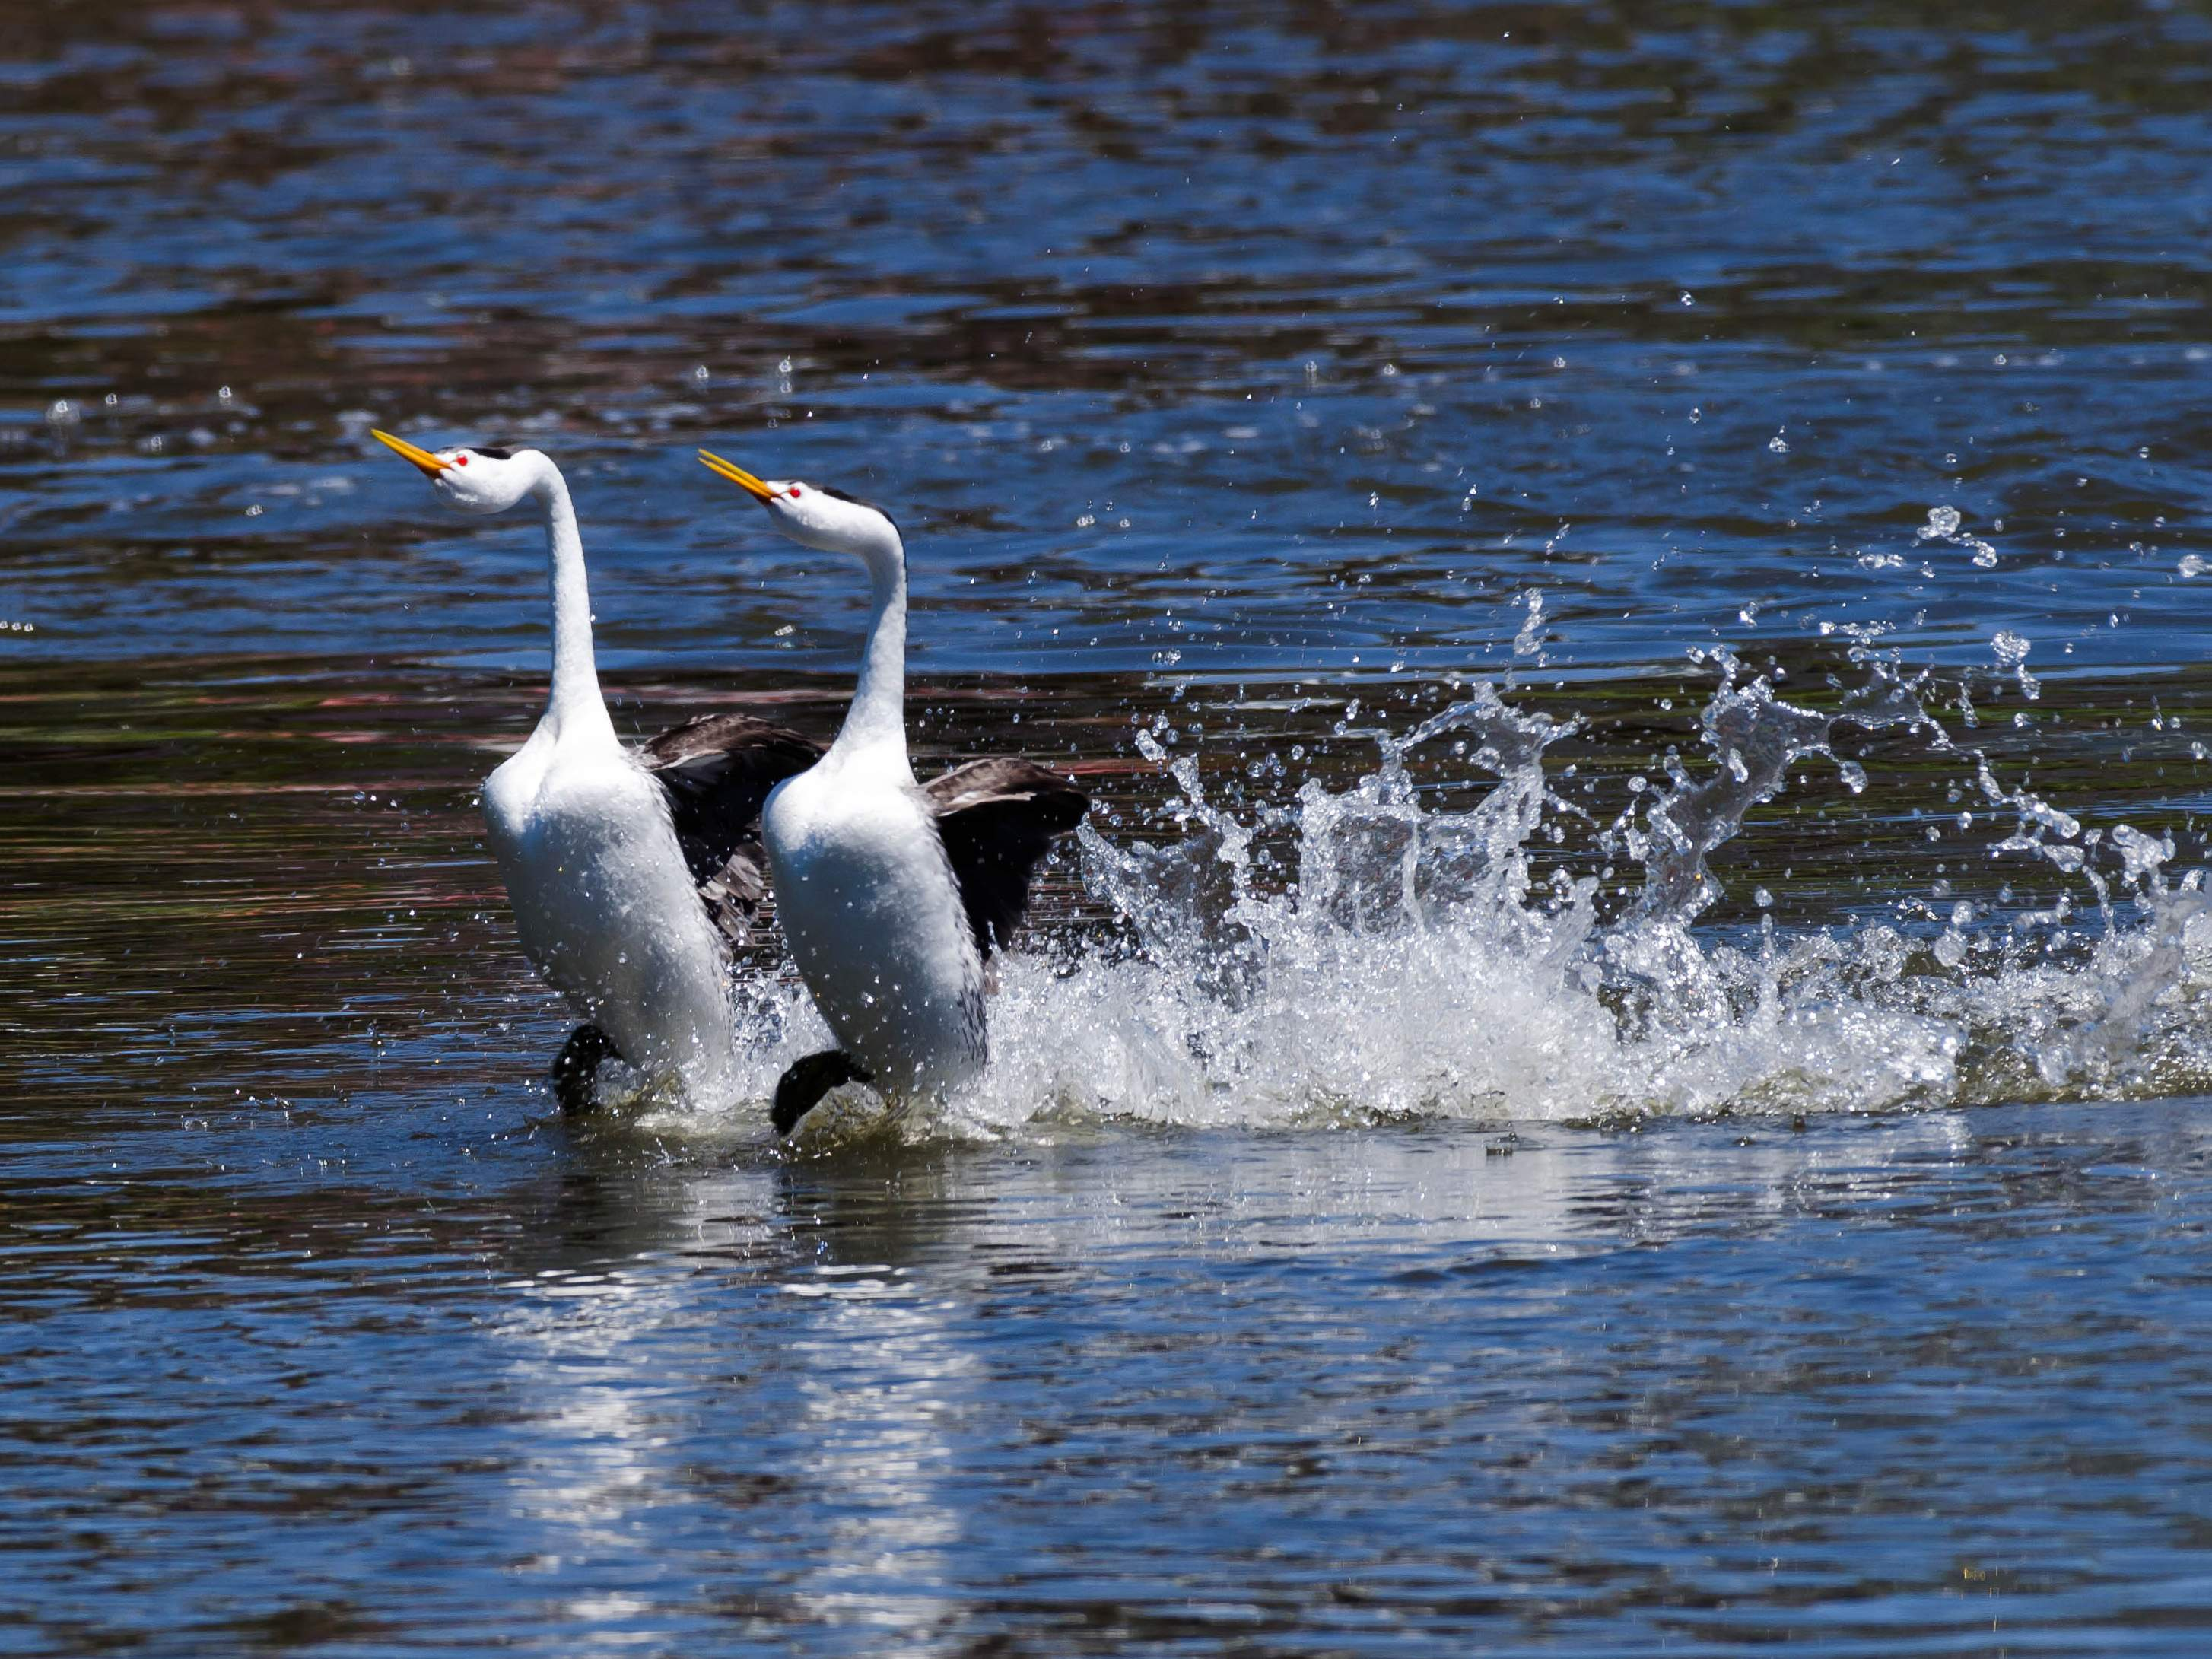 Western grebes churn up a wake at Moore Park in Klamath Falls. - Photo by Lawrence Bradburn